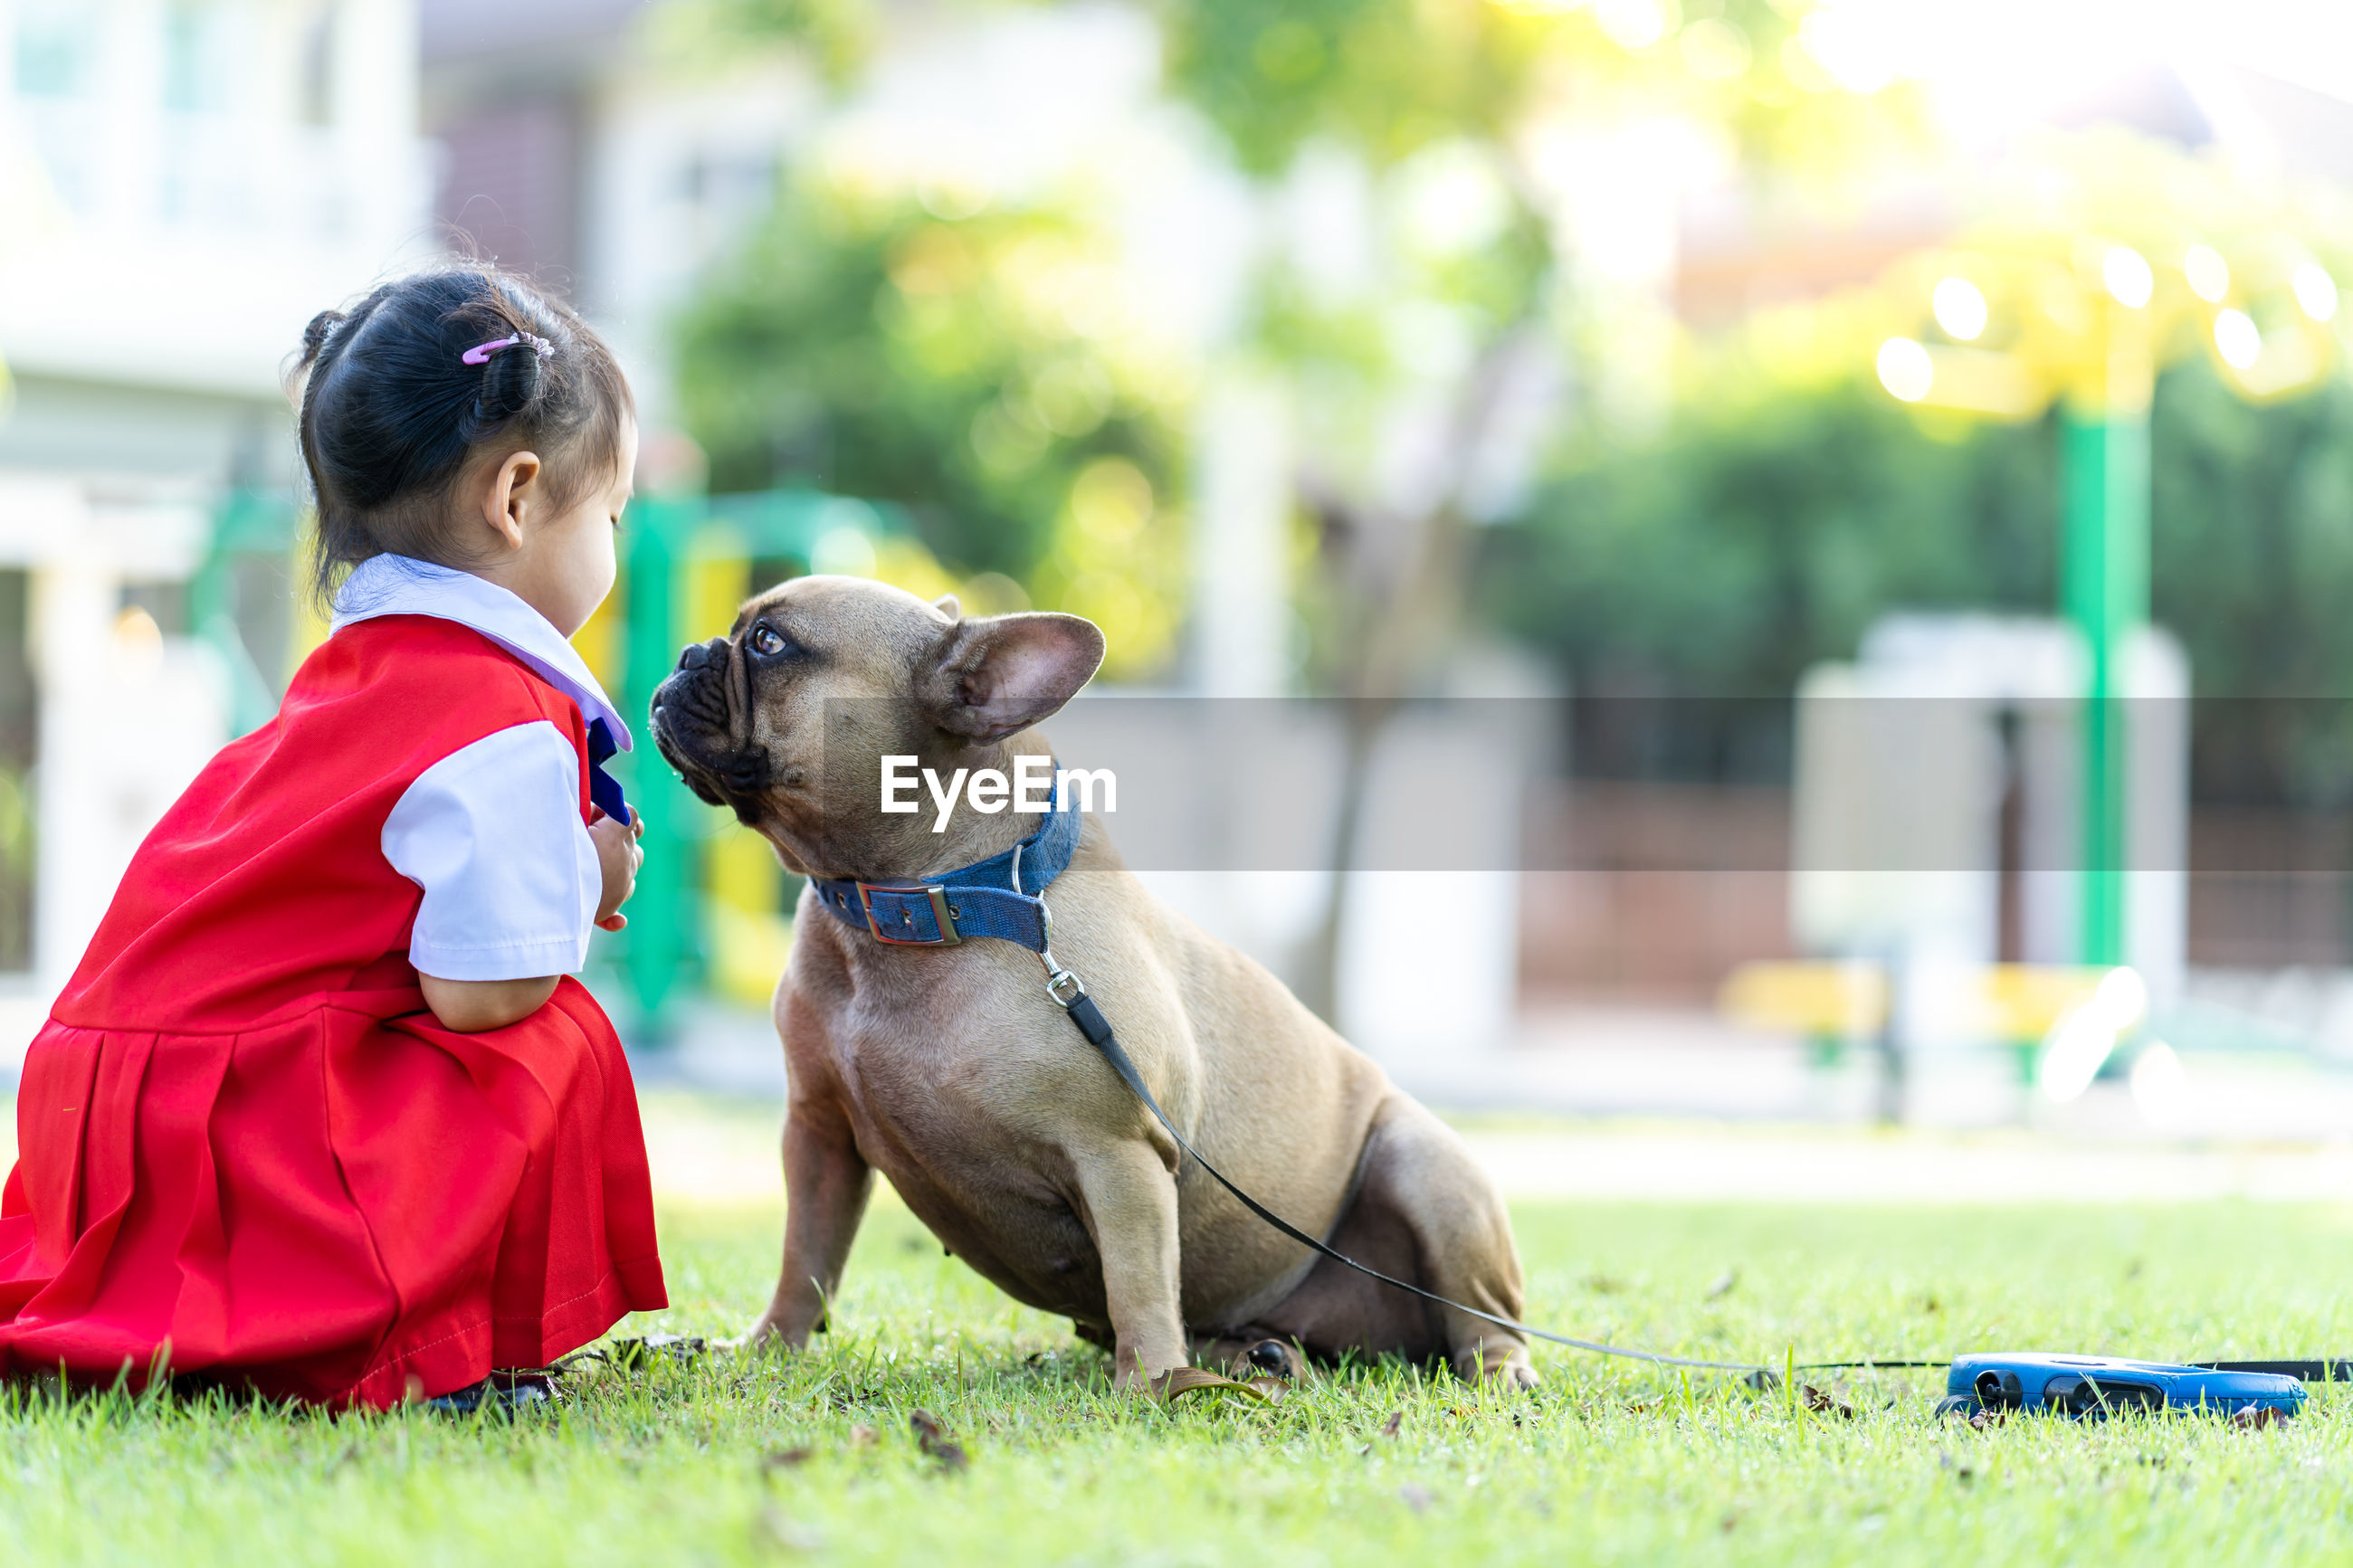 Girl crouching by dog on land